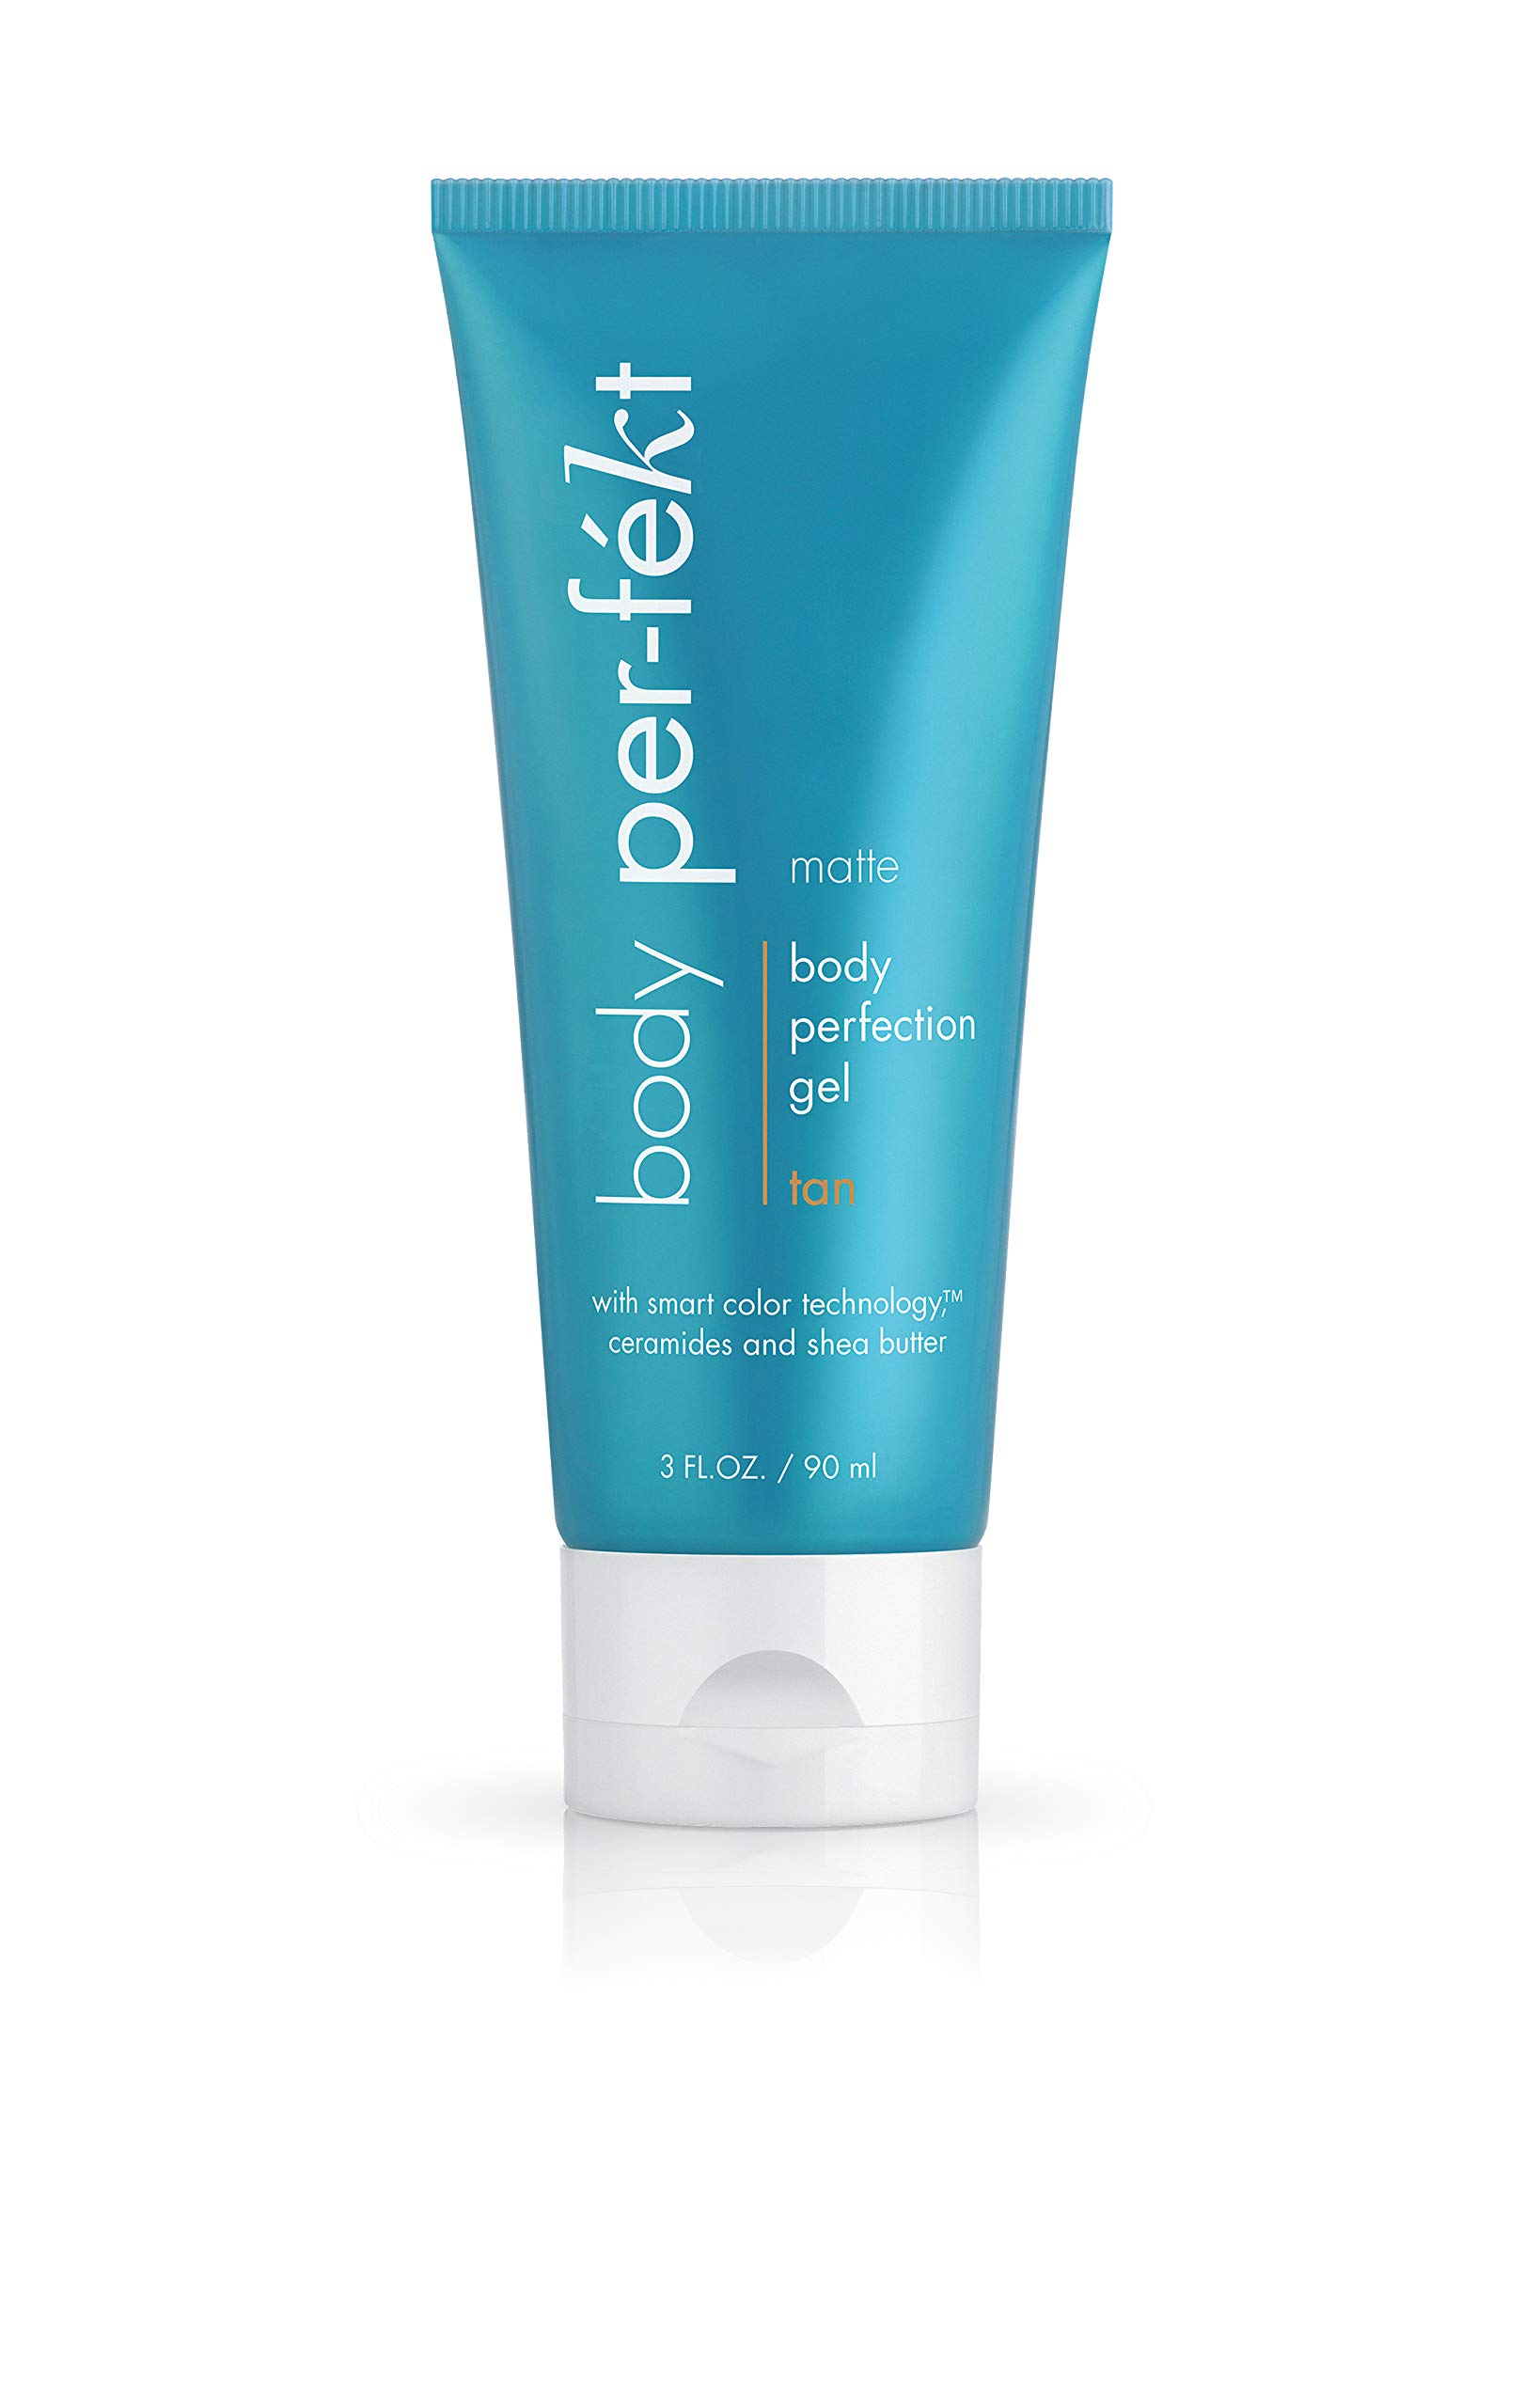 Body Perfection Gel - A Sunless, Natural Tanning Gel from Per-fekt Beauty, Your Cruelty Free Makeup Solution - Matte Tan, 3 Fl Oz / 90 ml